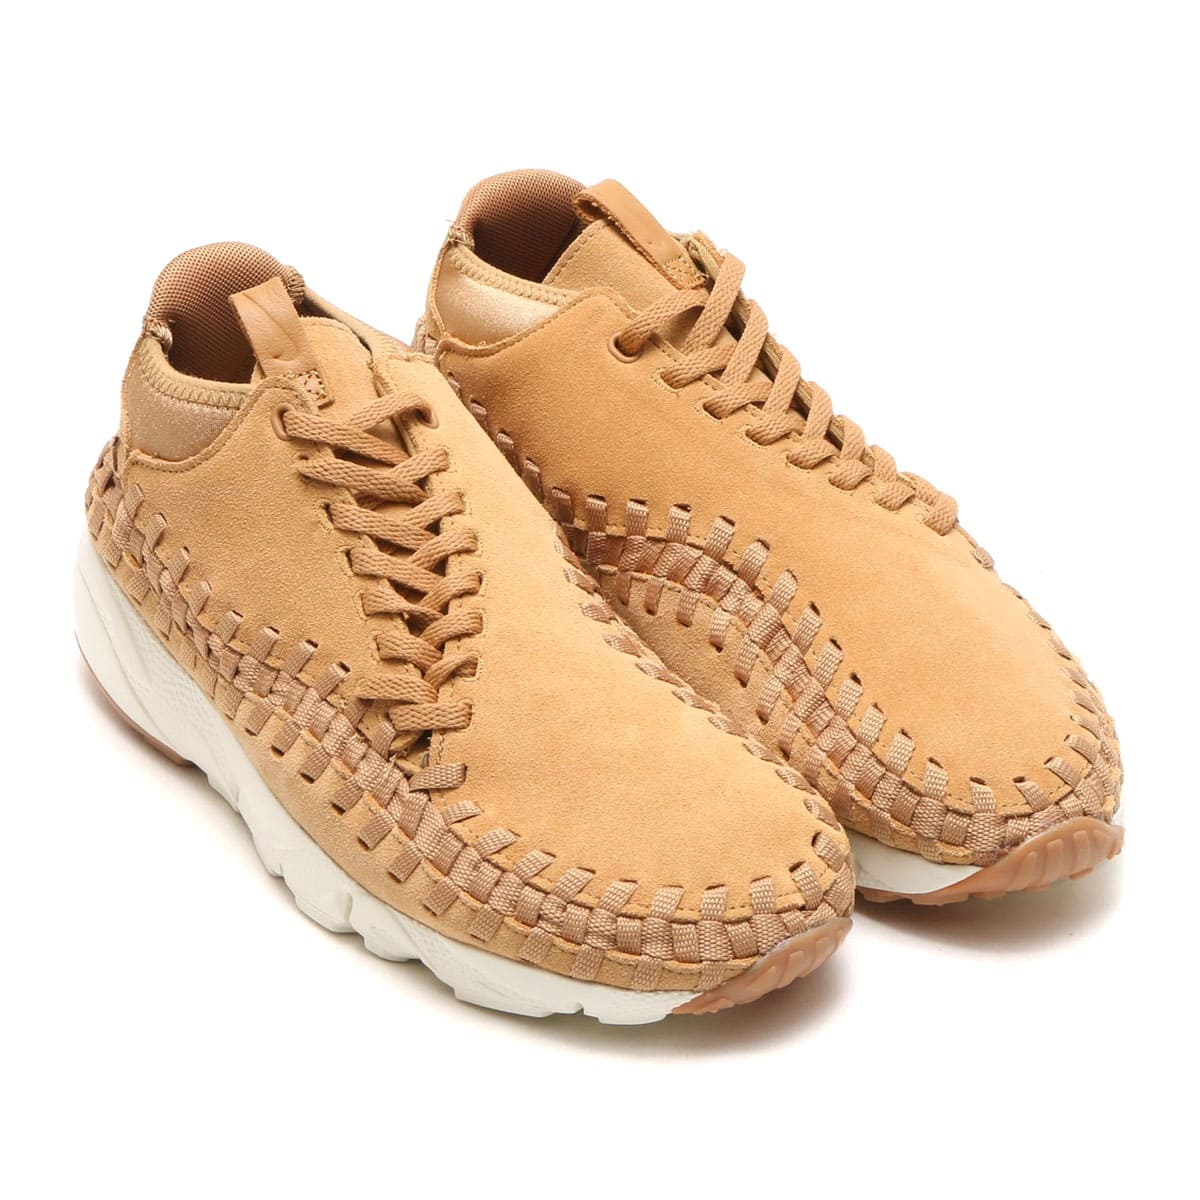 NIKE AIR FOOTSCAPE WOVEN CHUKKA FLAX/FLAX-SAIL-GUM MED BROWN_photo_large